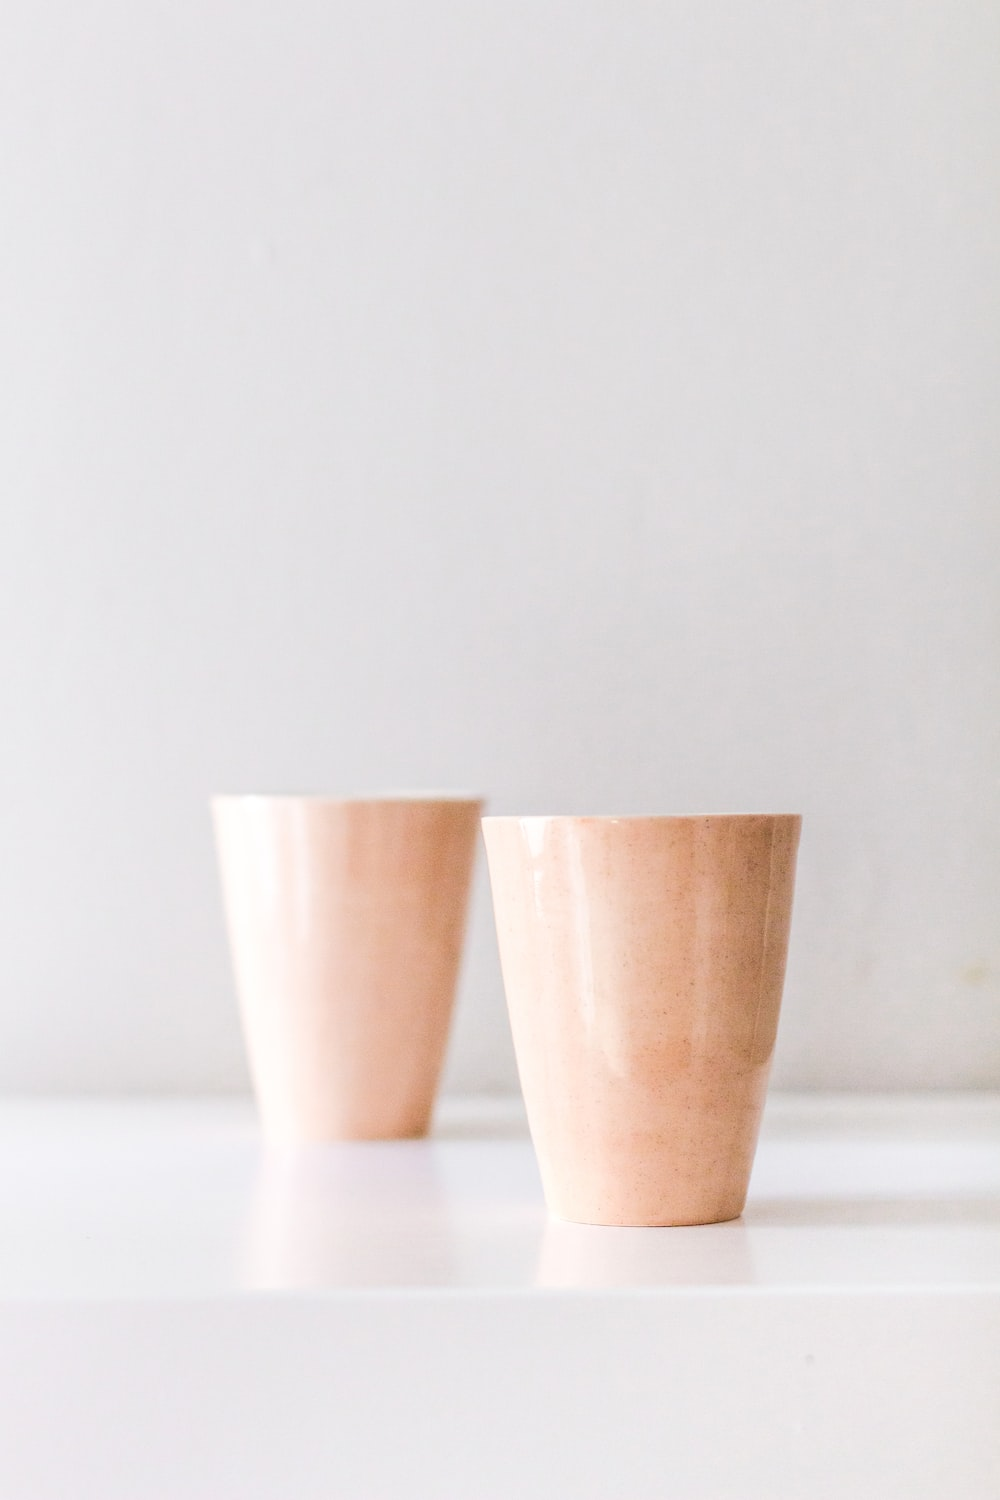 2 brown plastic cups on white table